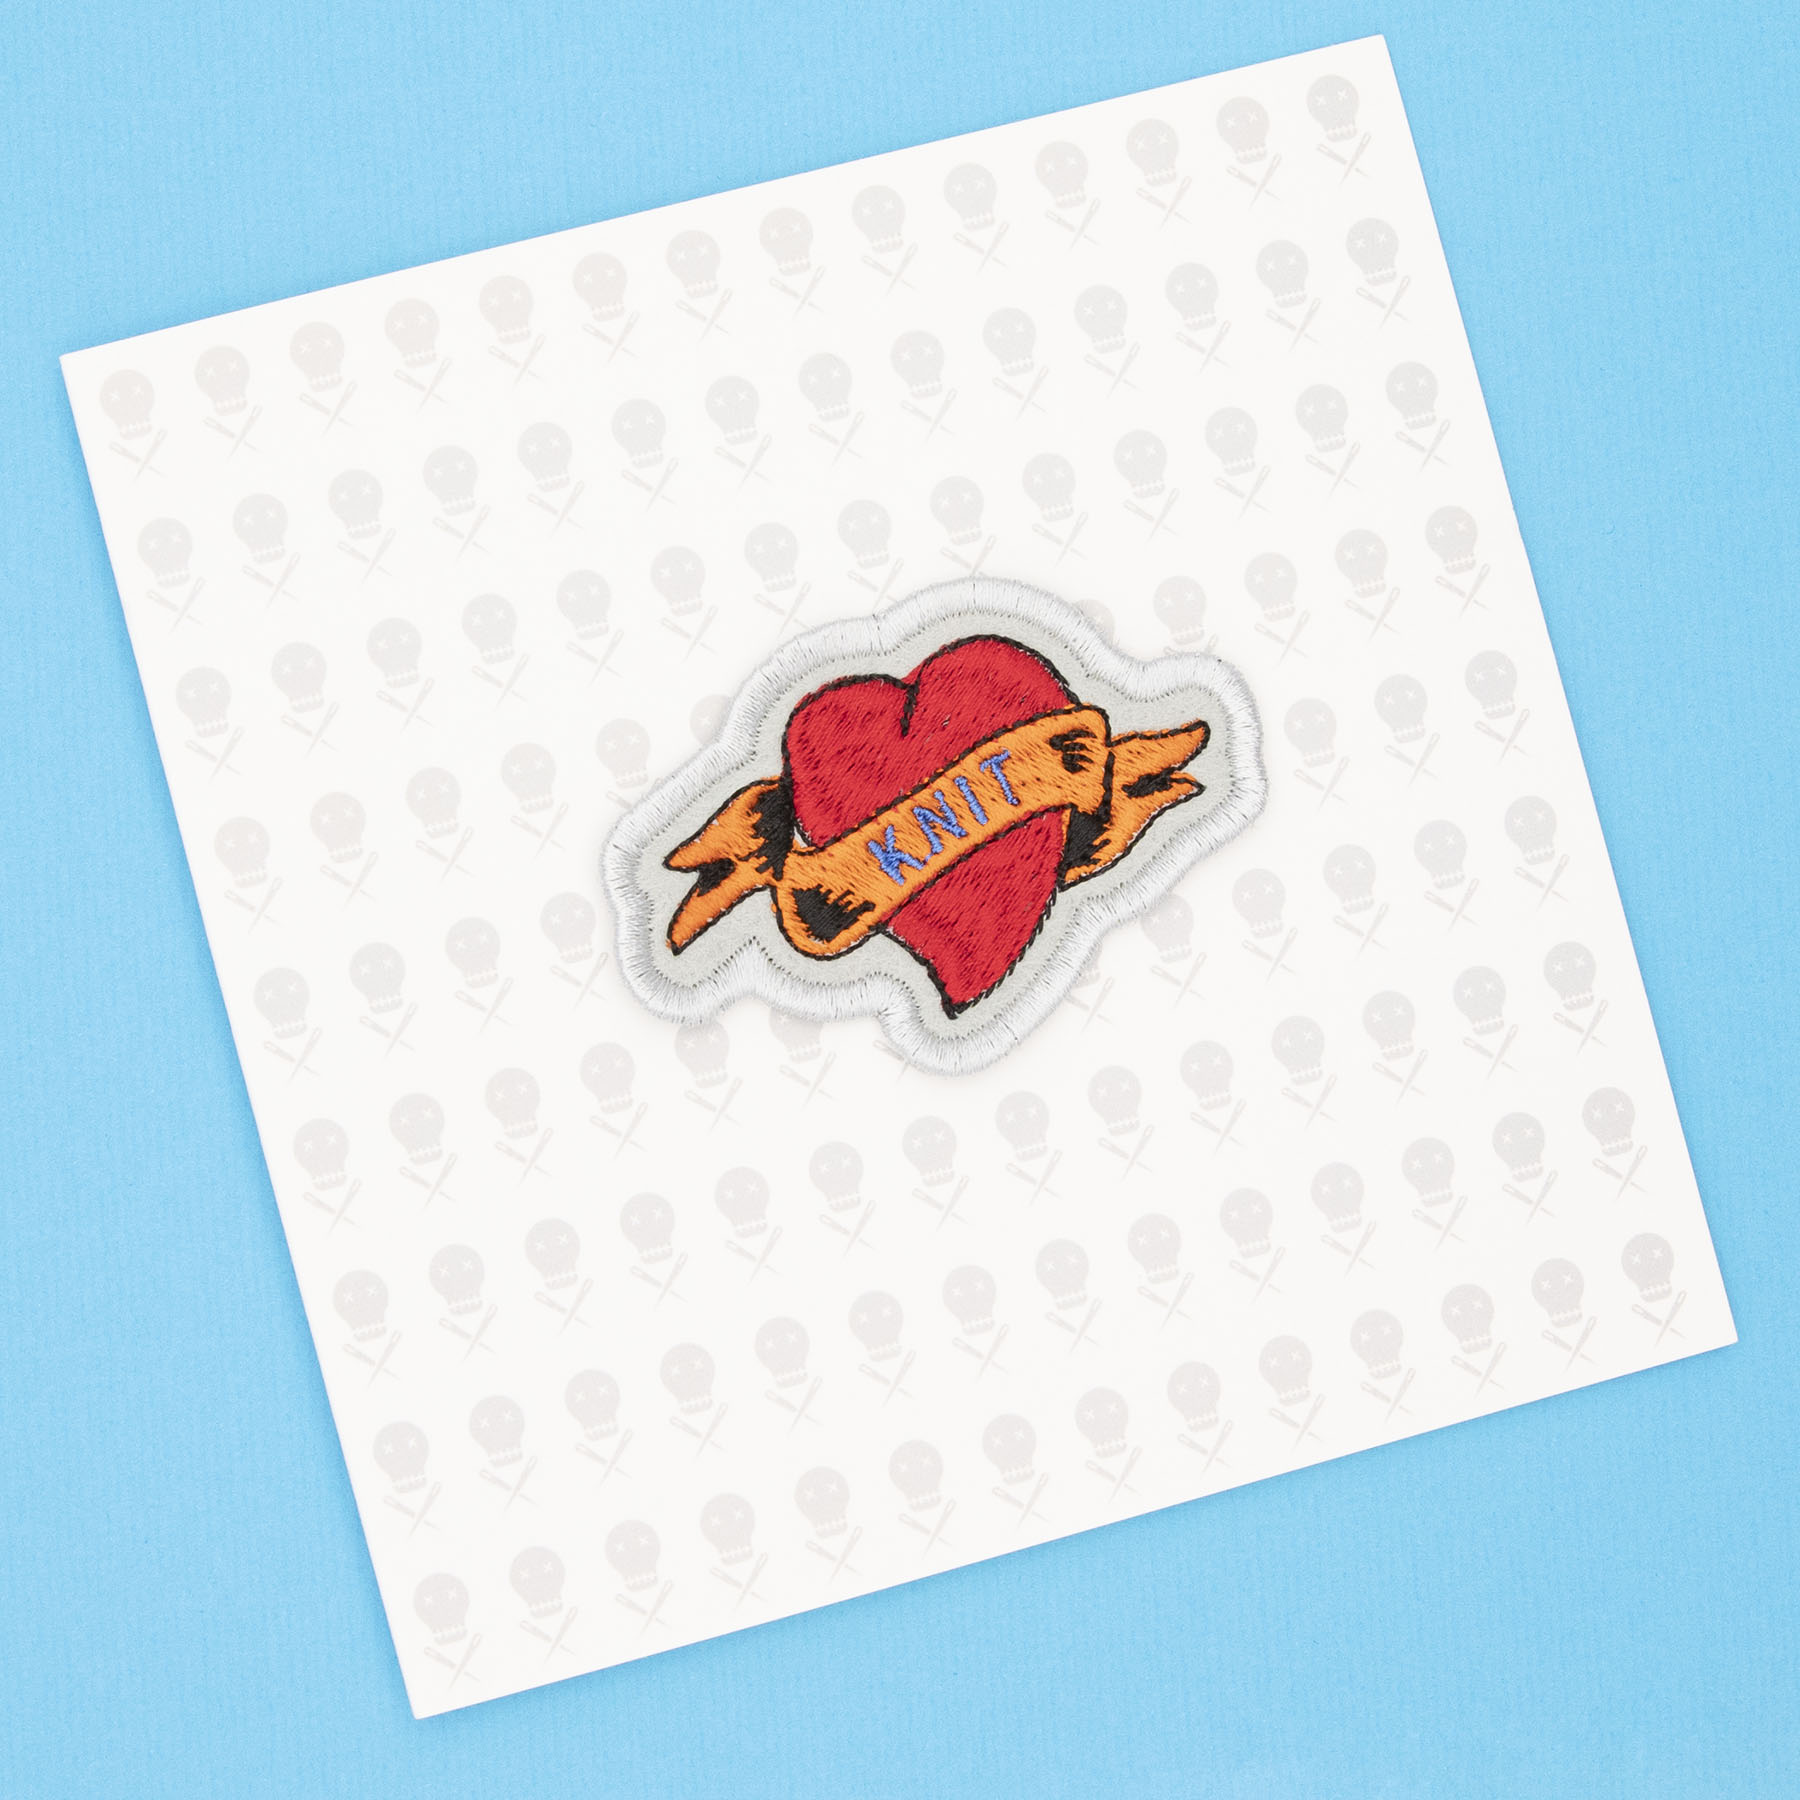 giftcad wih knit heart tattoo embroidered patch by The Unruly Stitch